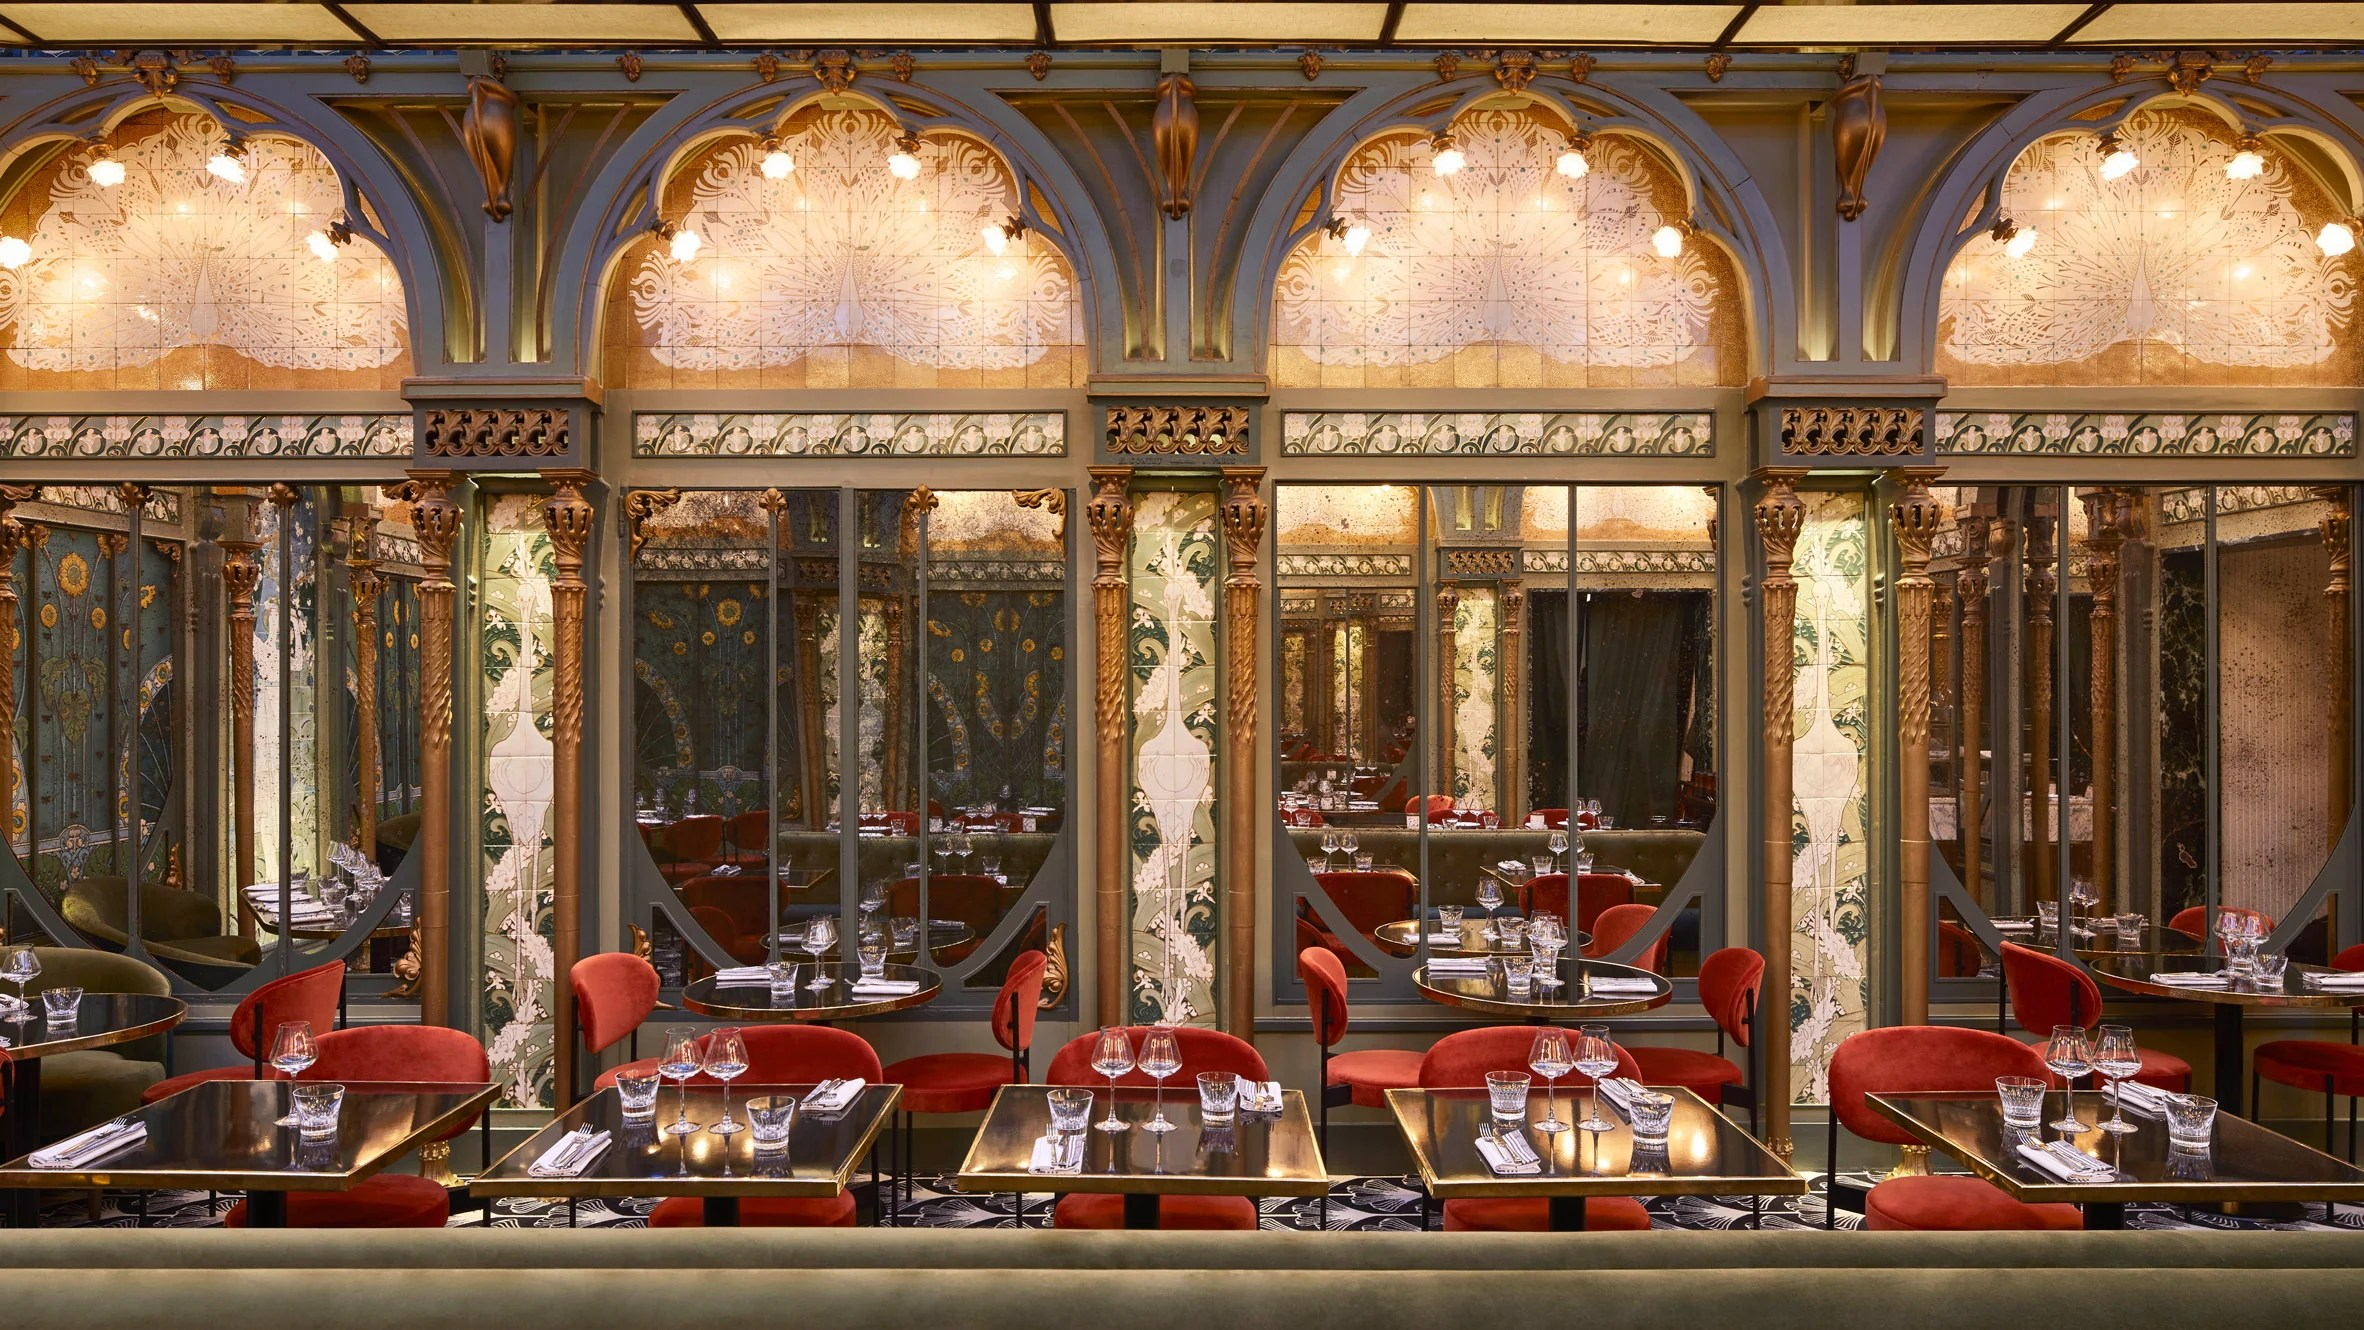 Restaurant Design Paris Beefbar Paris By Humbert Poyet Features An Art Nouveau Atrium